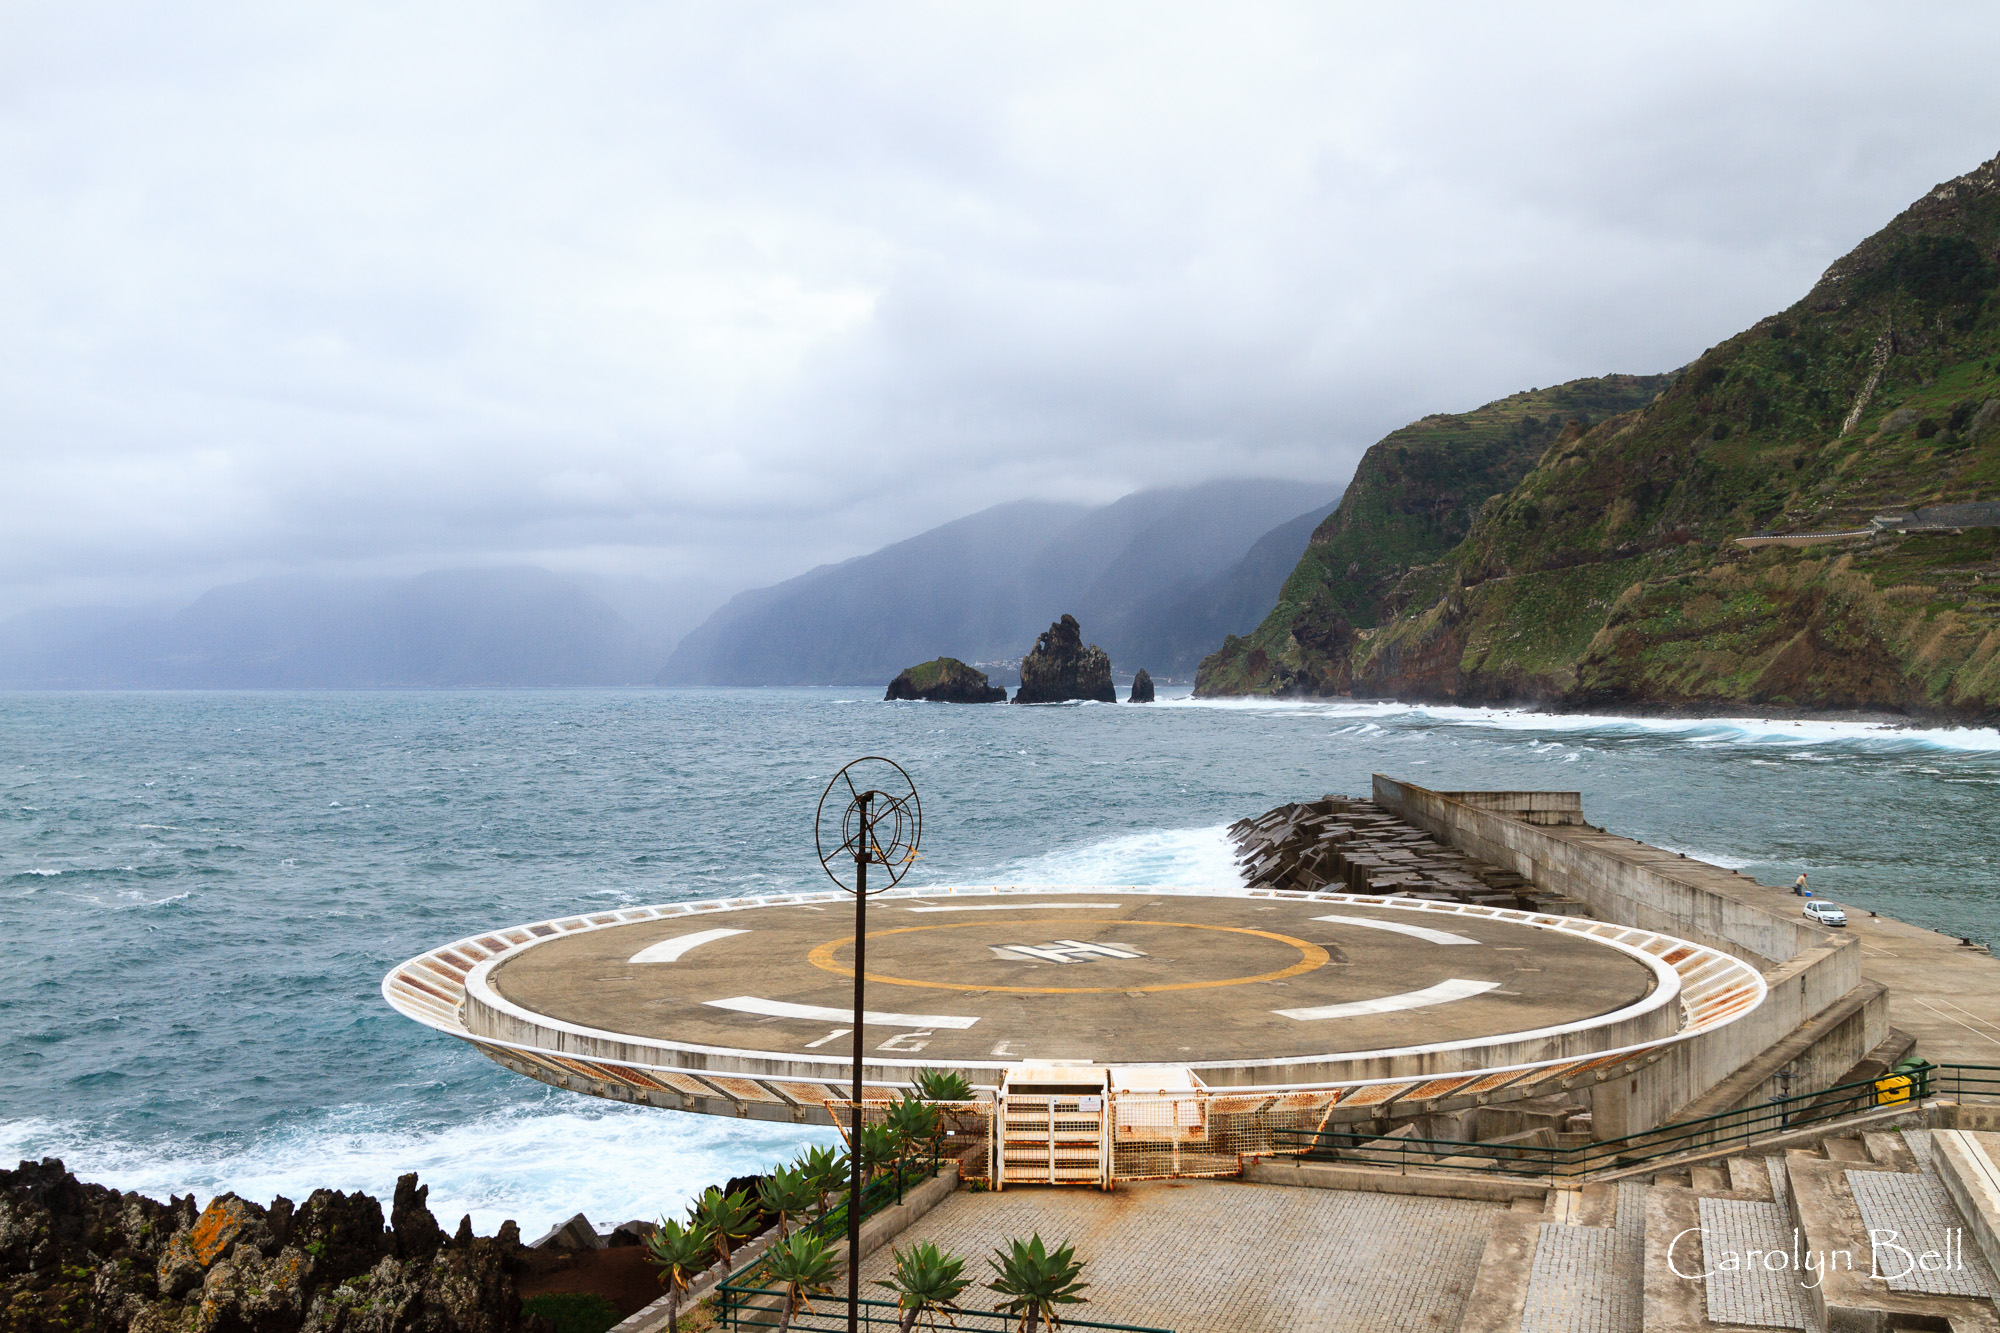 Porto Moniz, the helipad